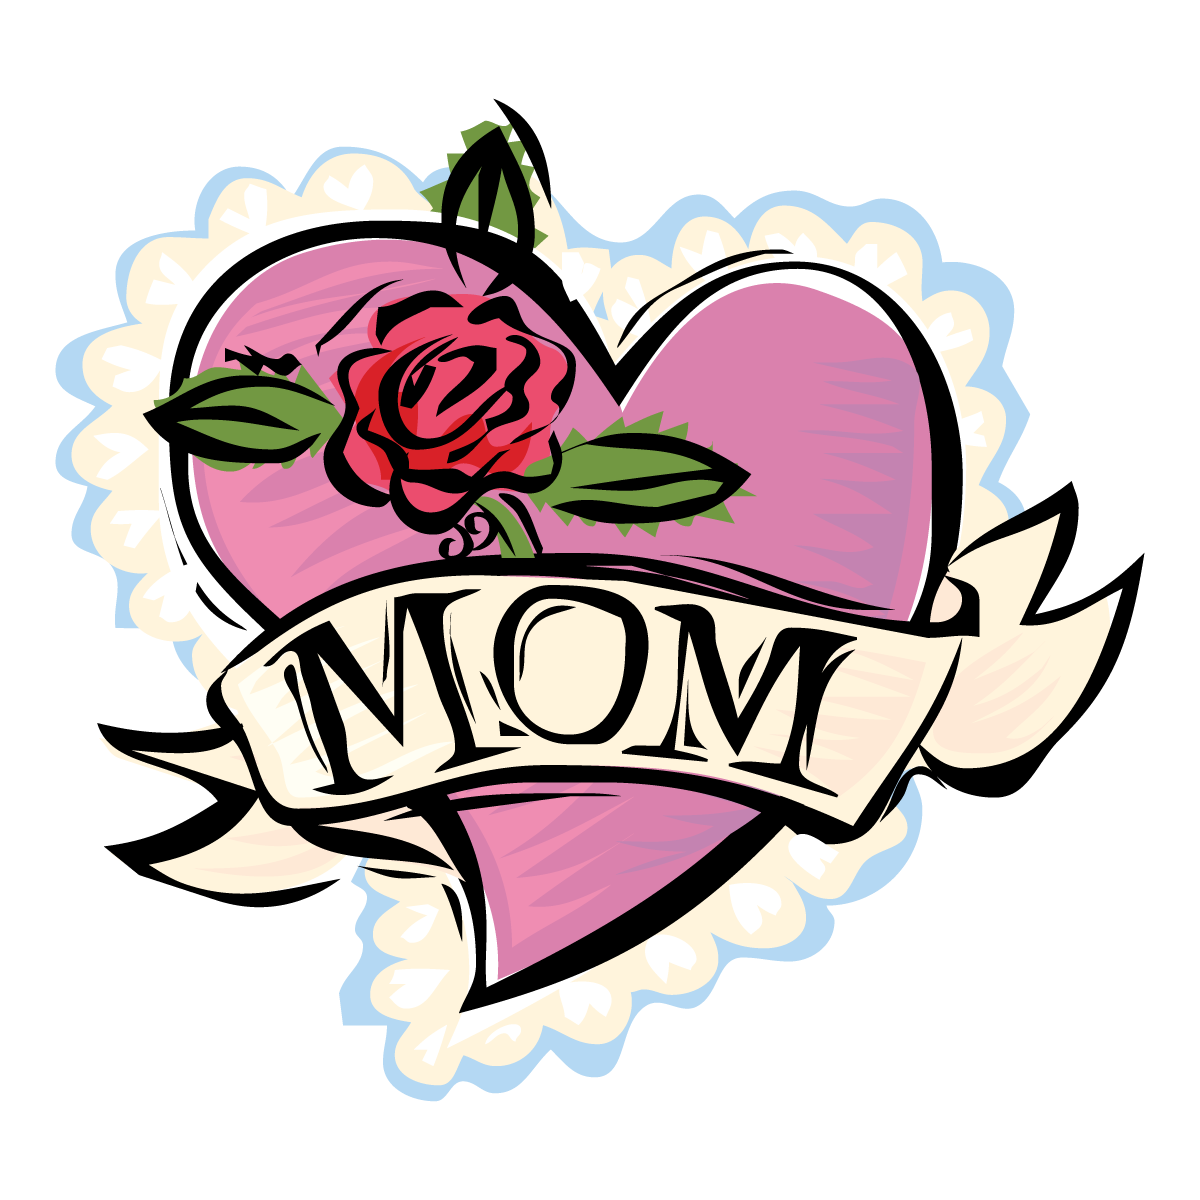 Clipart of mothers day hearts clip art transparent download Clipart of mothers day hearts - ClipartFest clip art transparent download